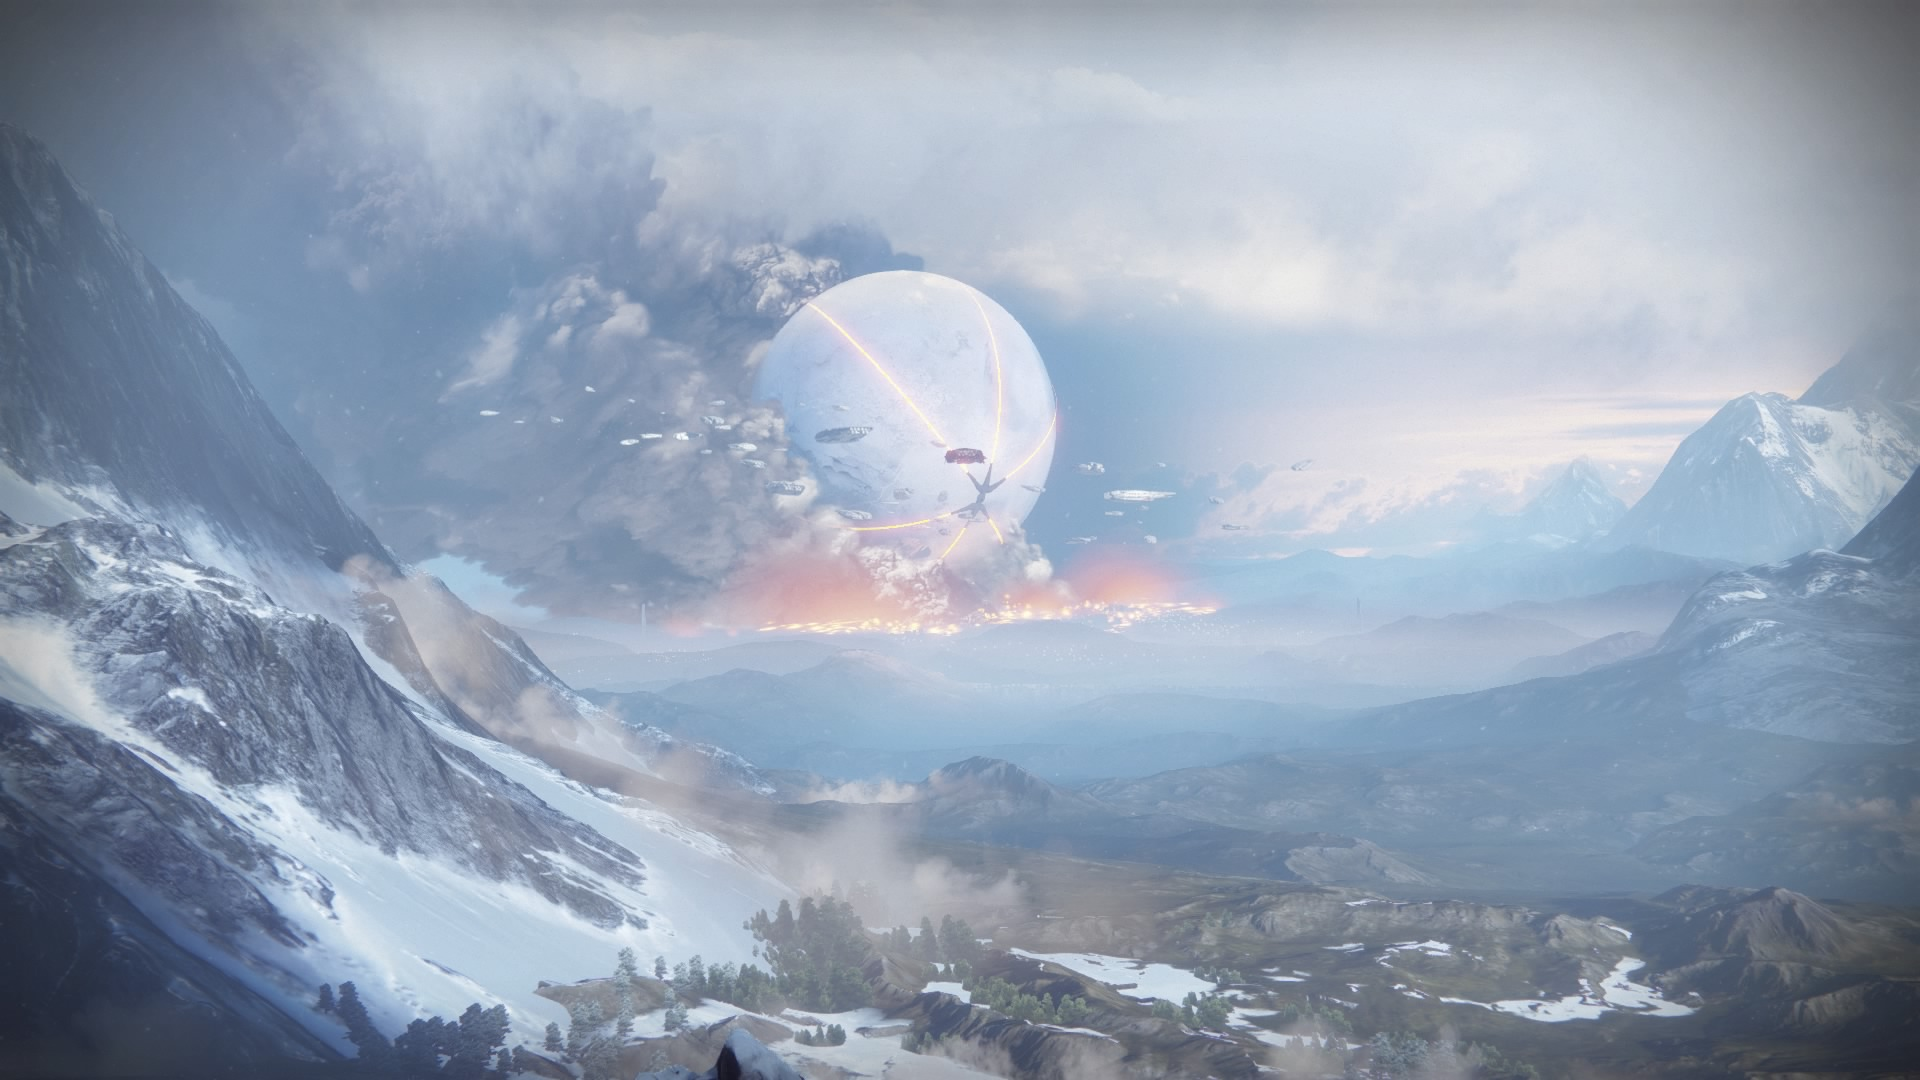 Destiny 2 – We accept the game we think we deserve